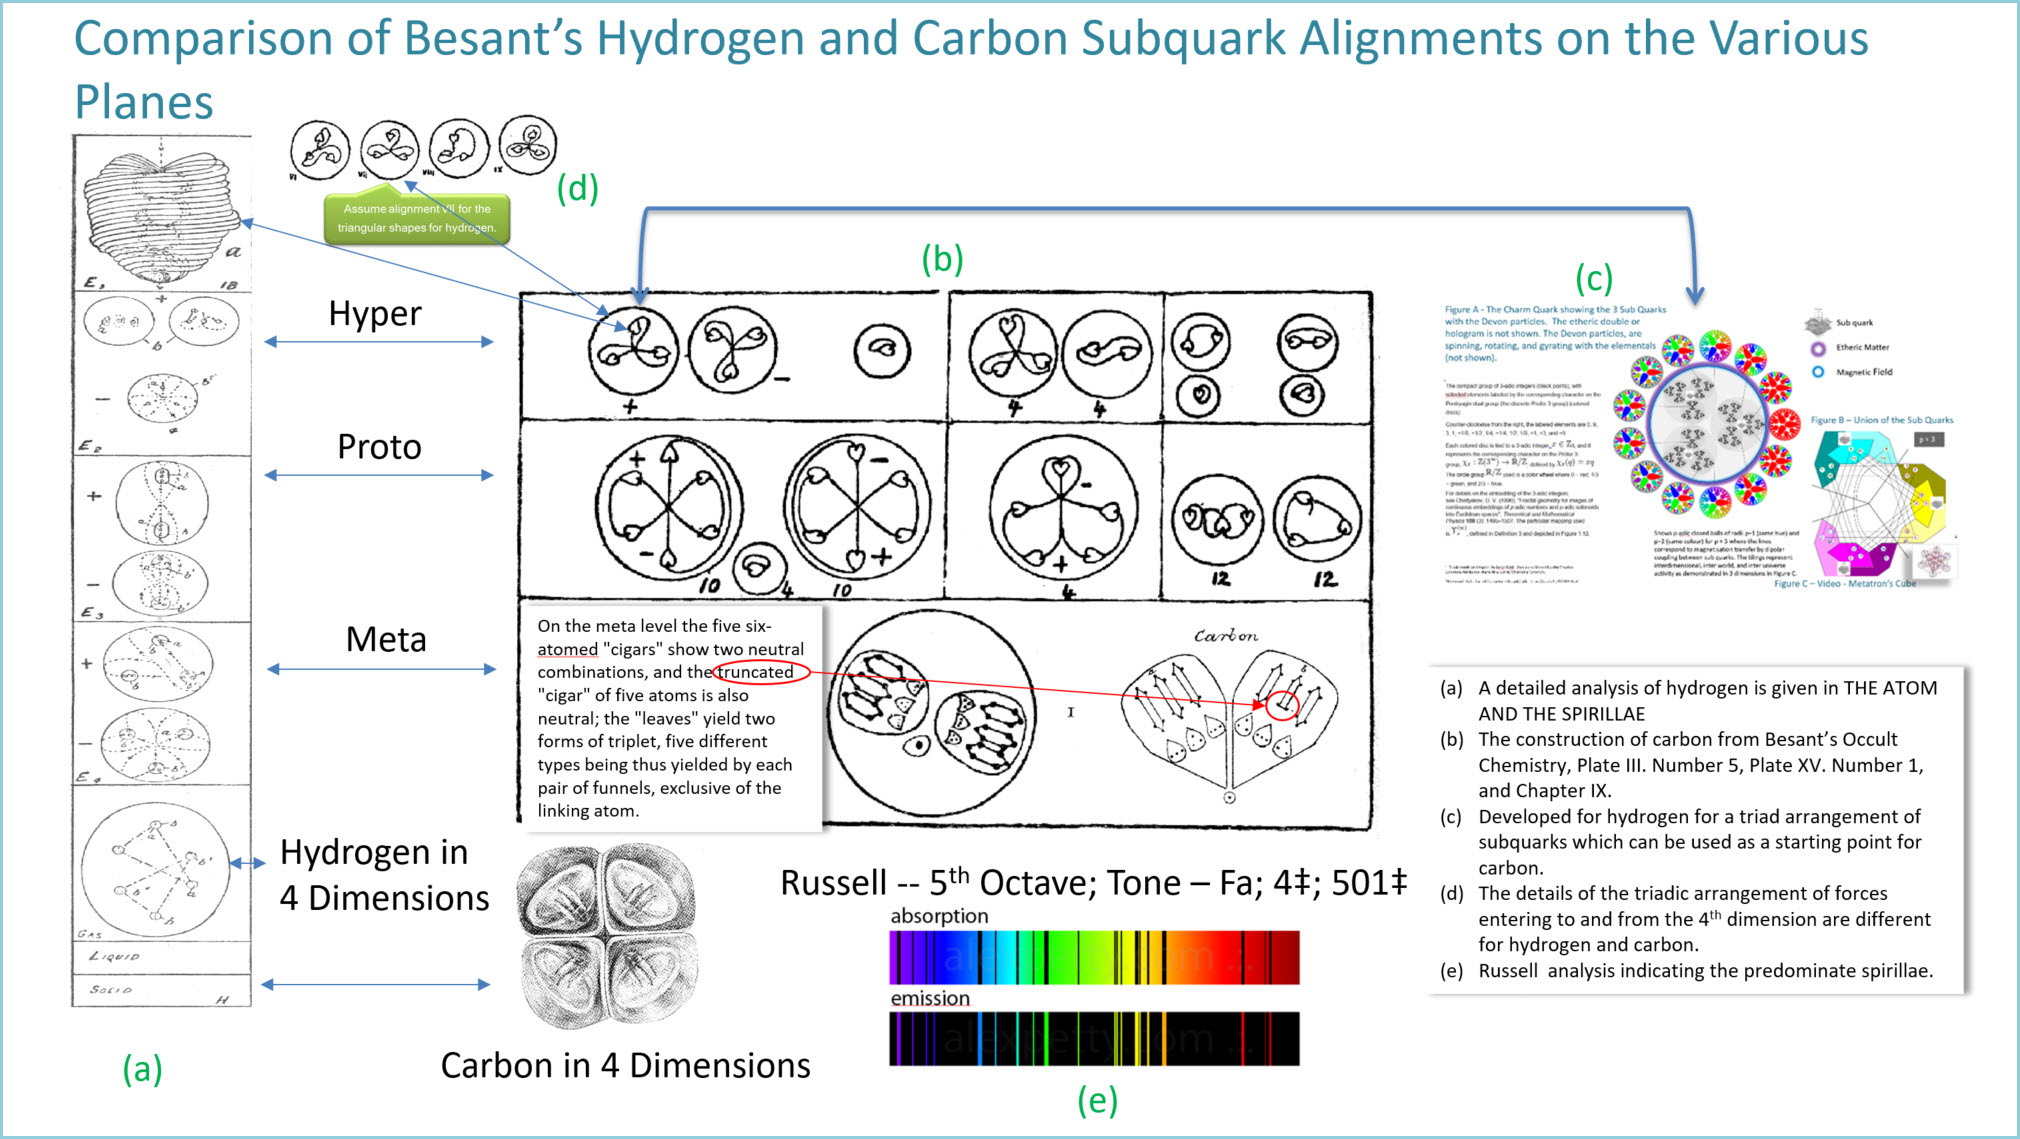 Comparison of Besant's Hydrogen vs Carbon Subquark Alignments on the Various Planes